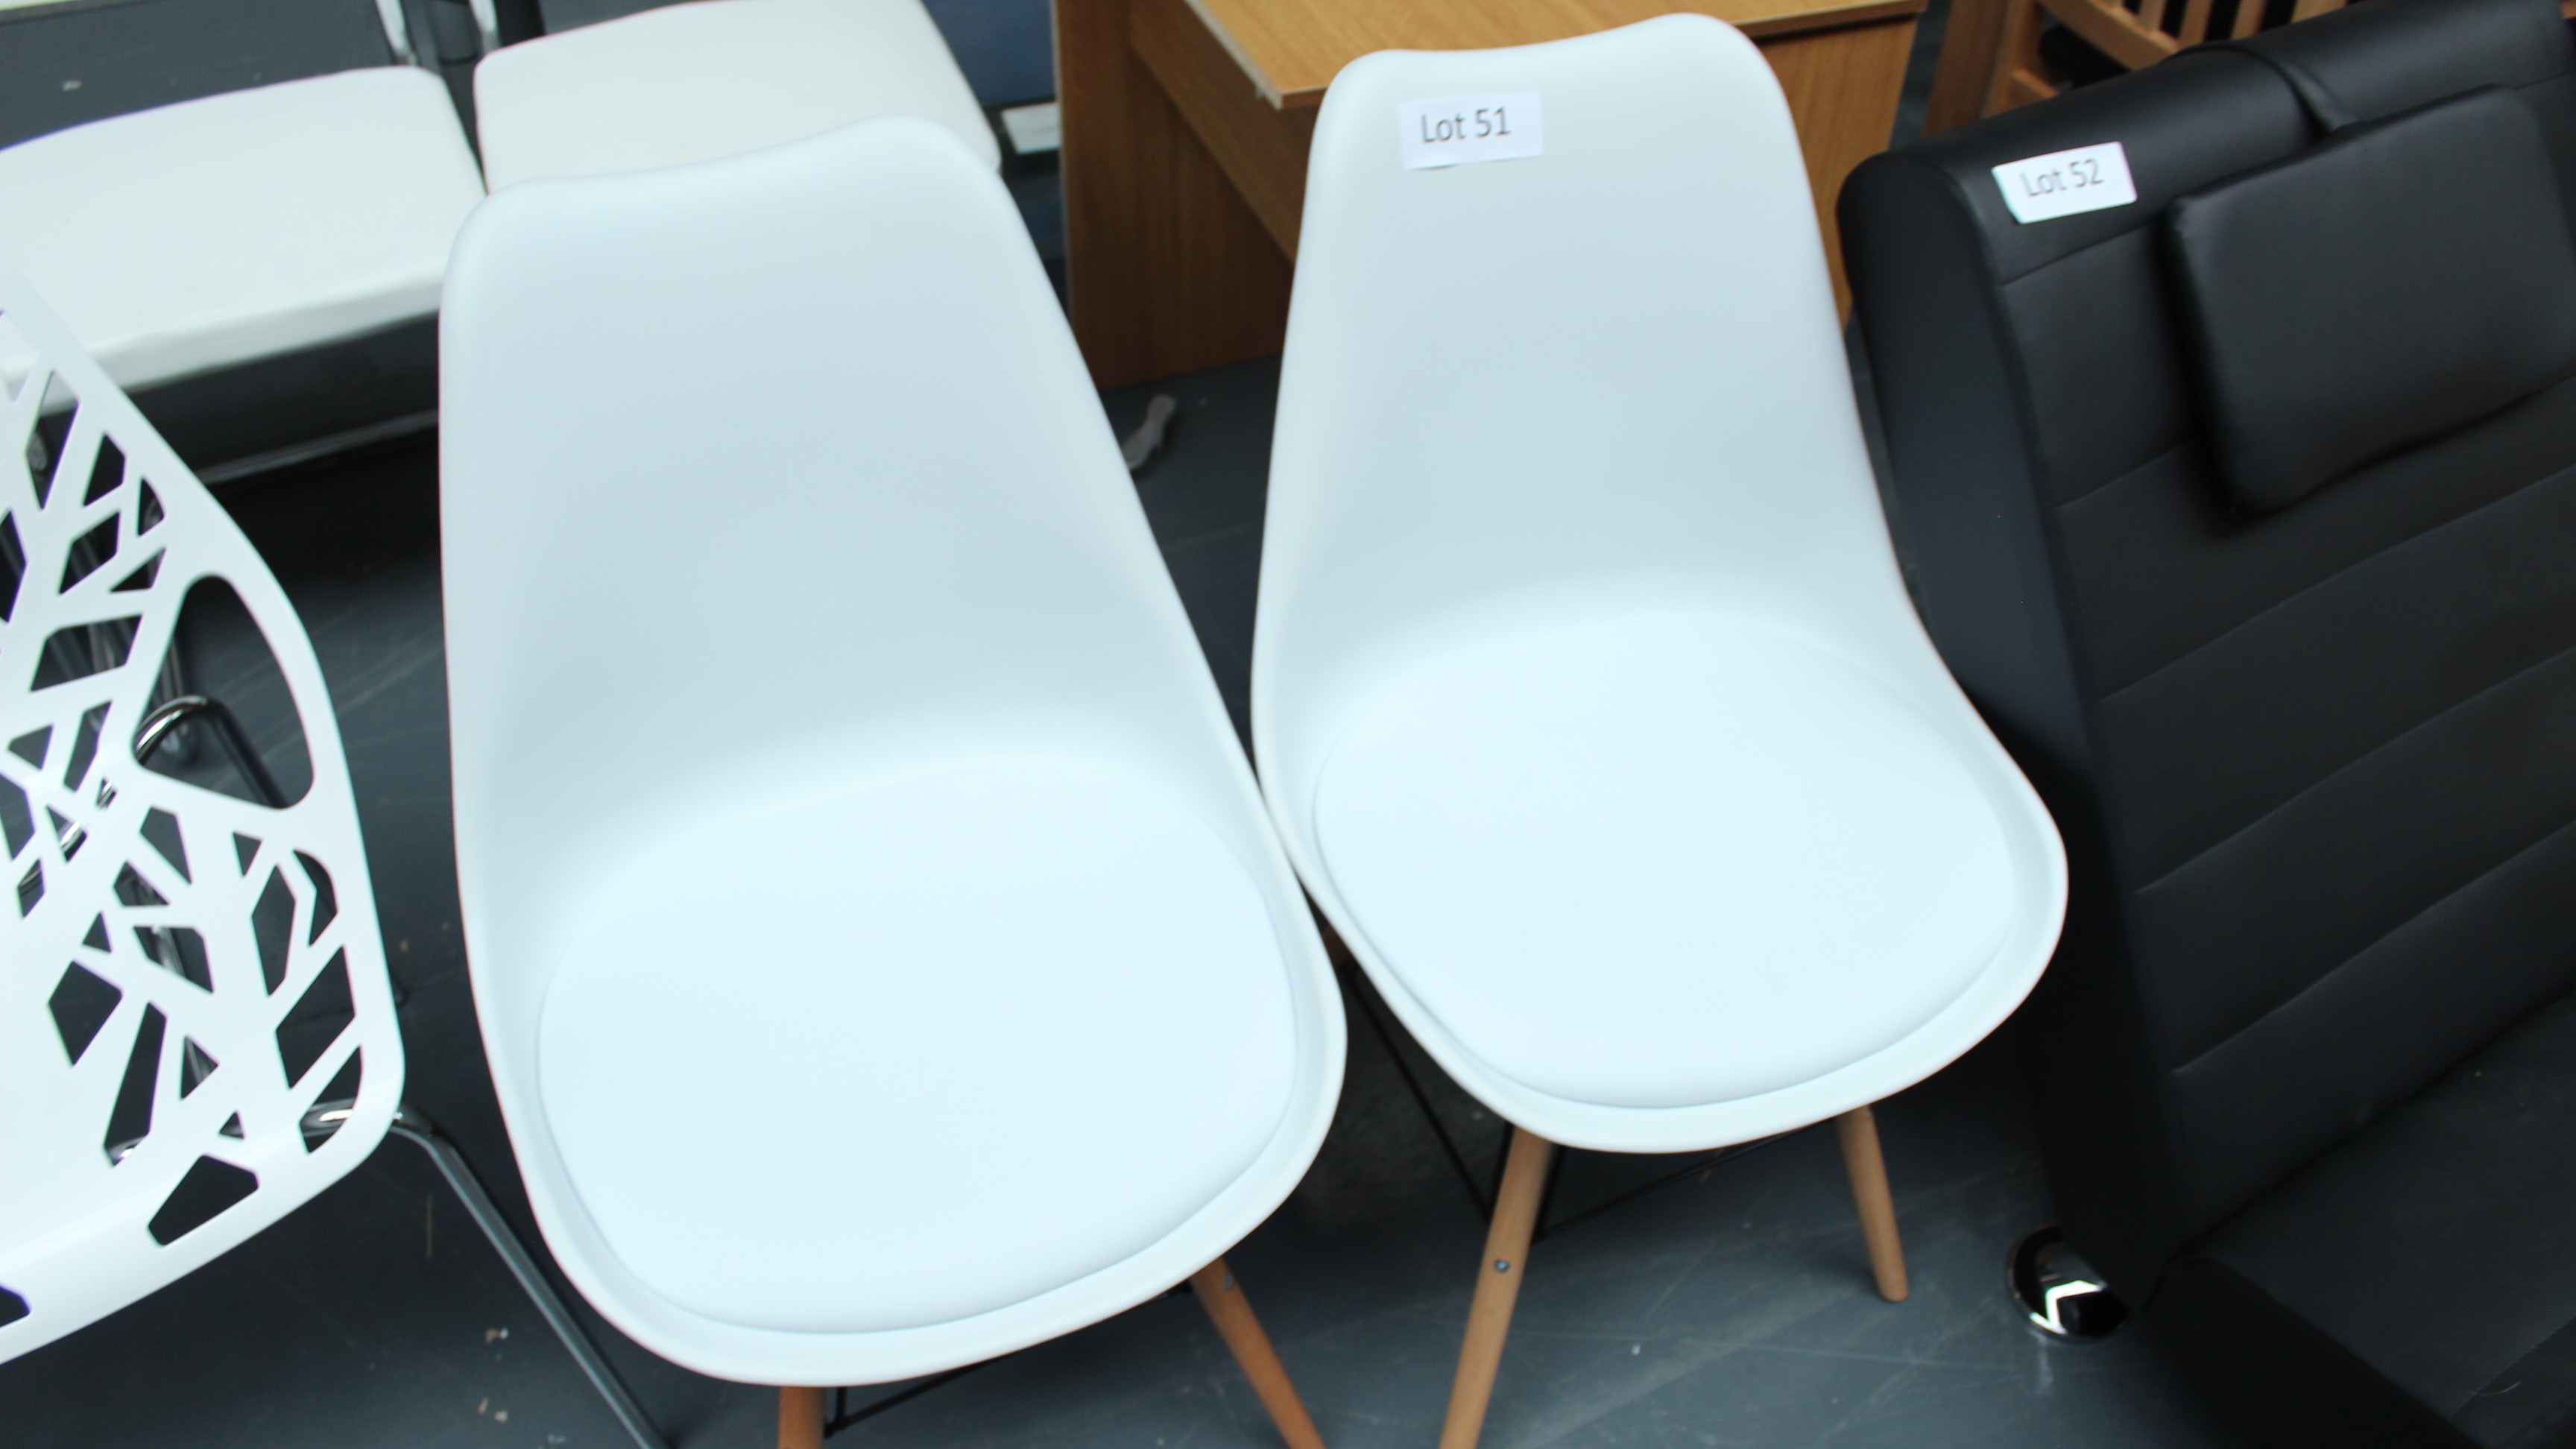 Lot 51 - 2 Retro White & Wooden Chairs. New